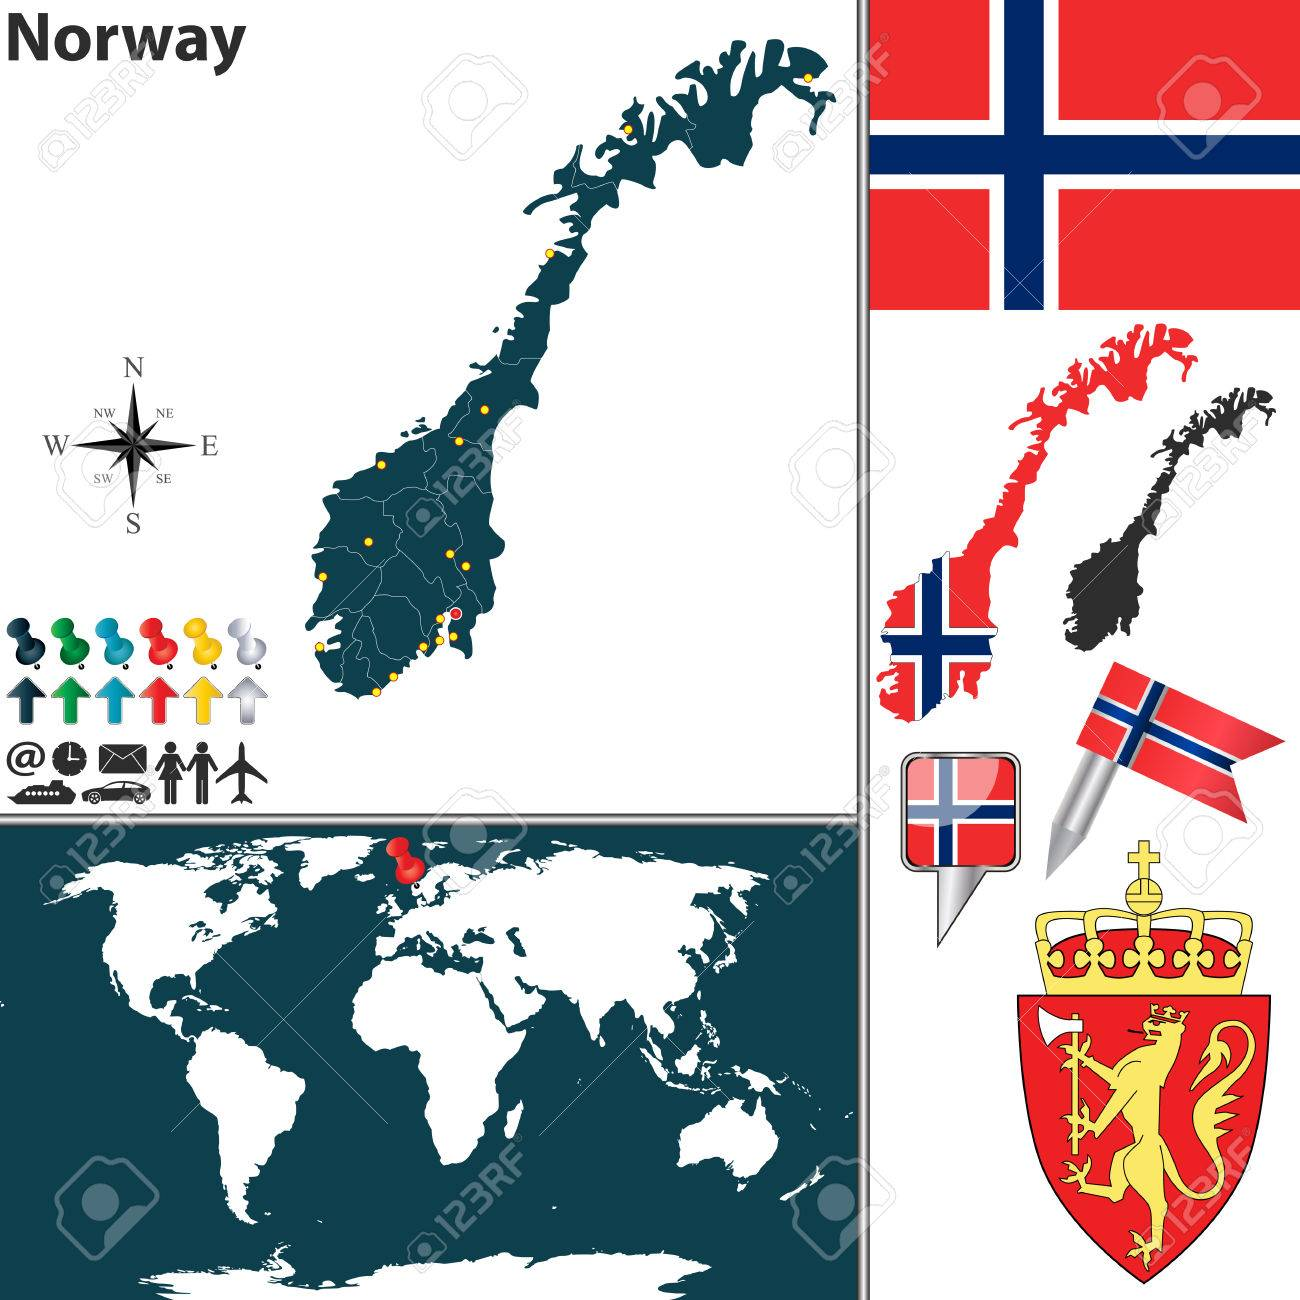 Map Of Norway With Regions Coat Of Arms And Location On World